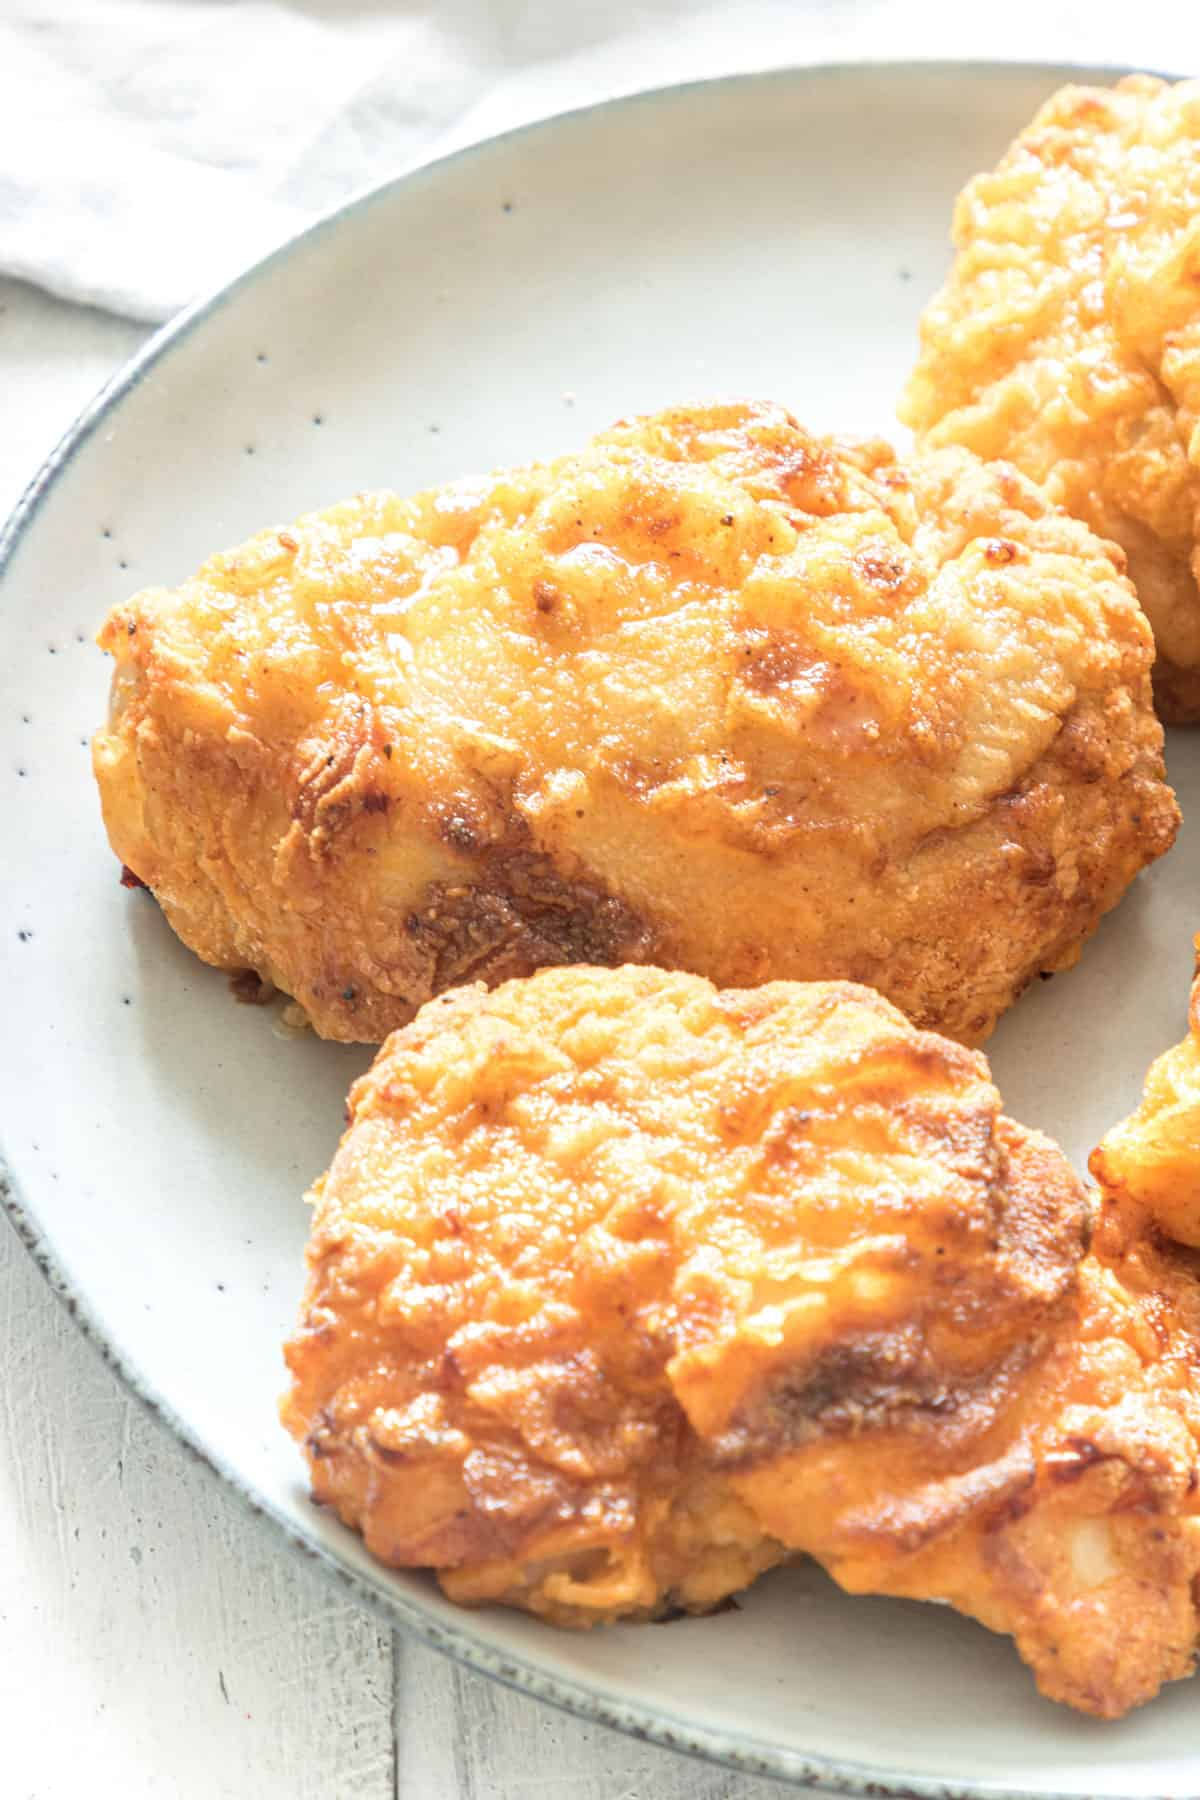 close up view of the completed air fryer fried chicken recipe